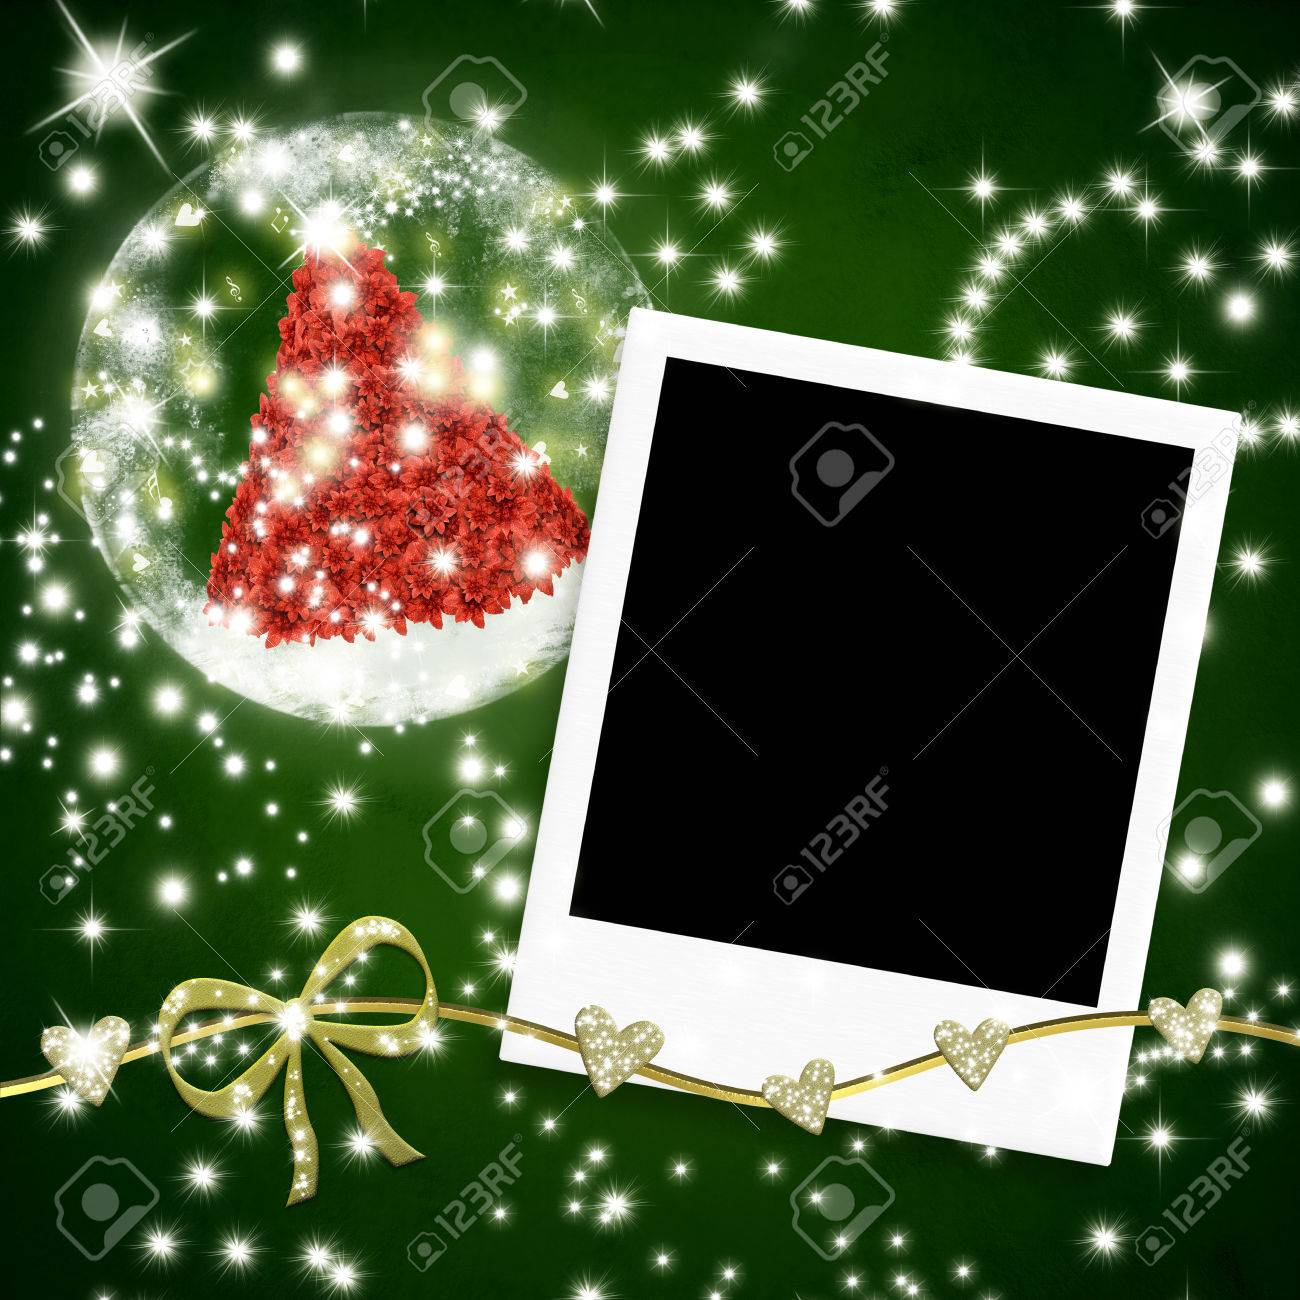 Christmas Cards Photo Frames, One Instant Photo Frame And Christmas ...